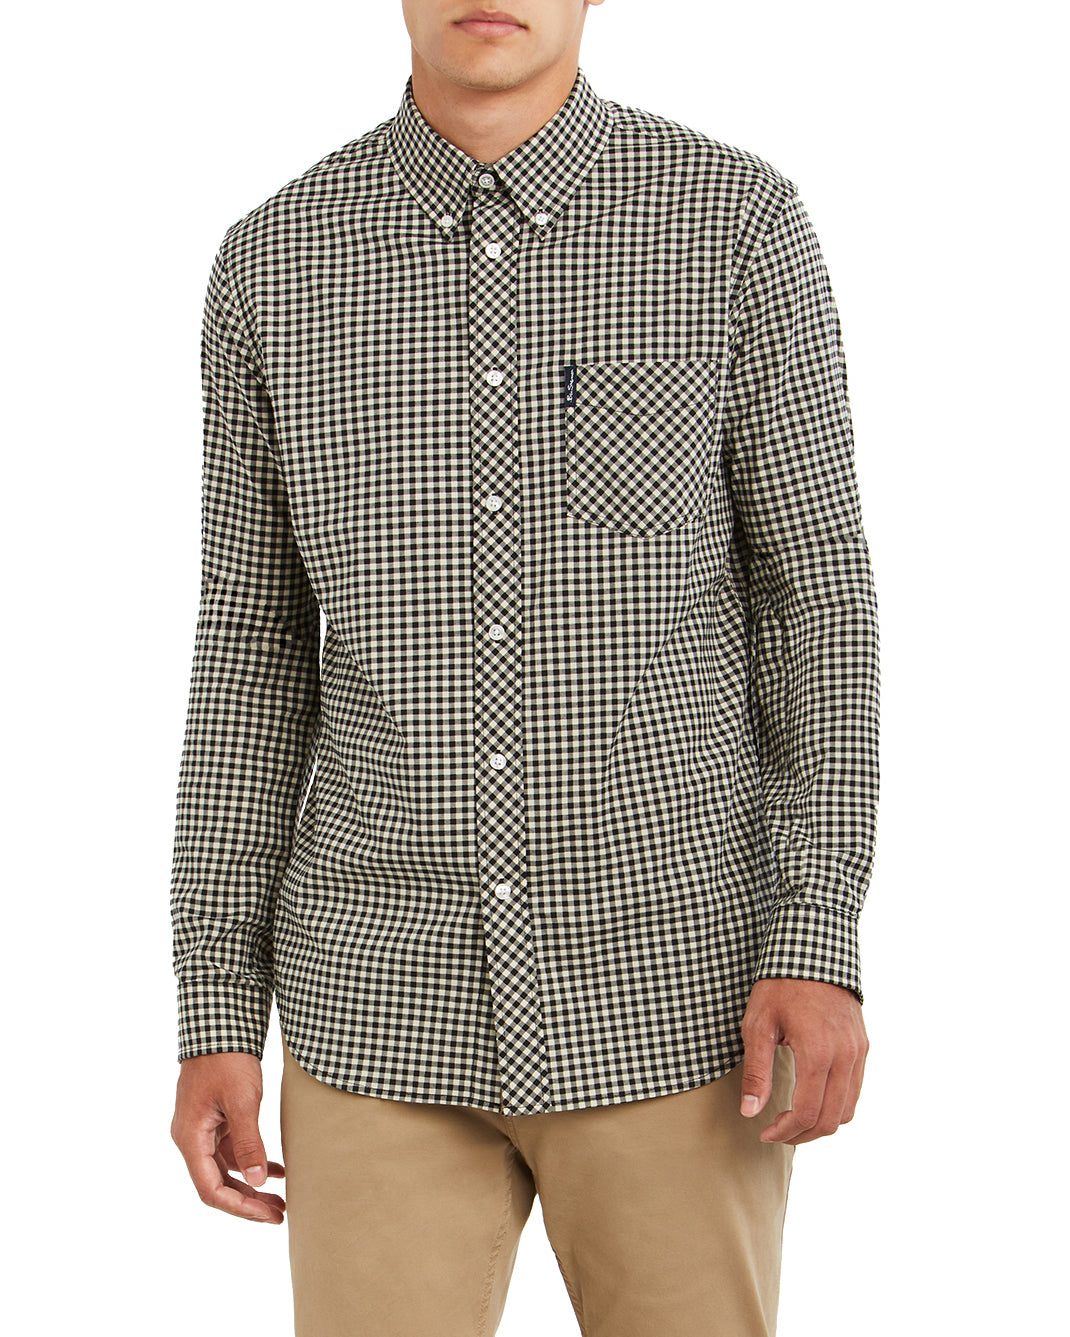 Long-Sleeve Gingham Shirt - Black